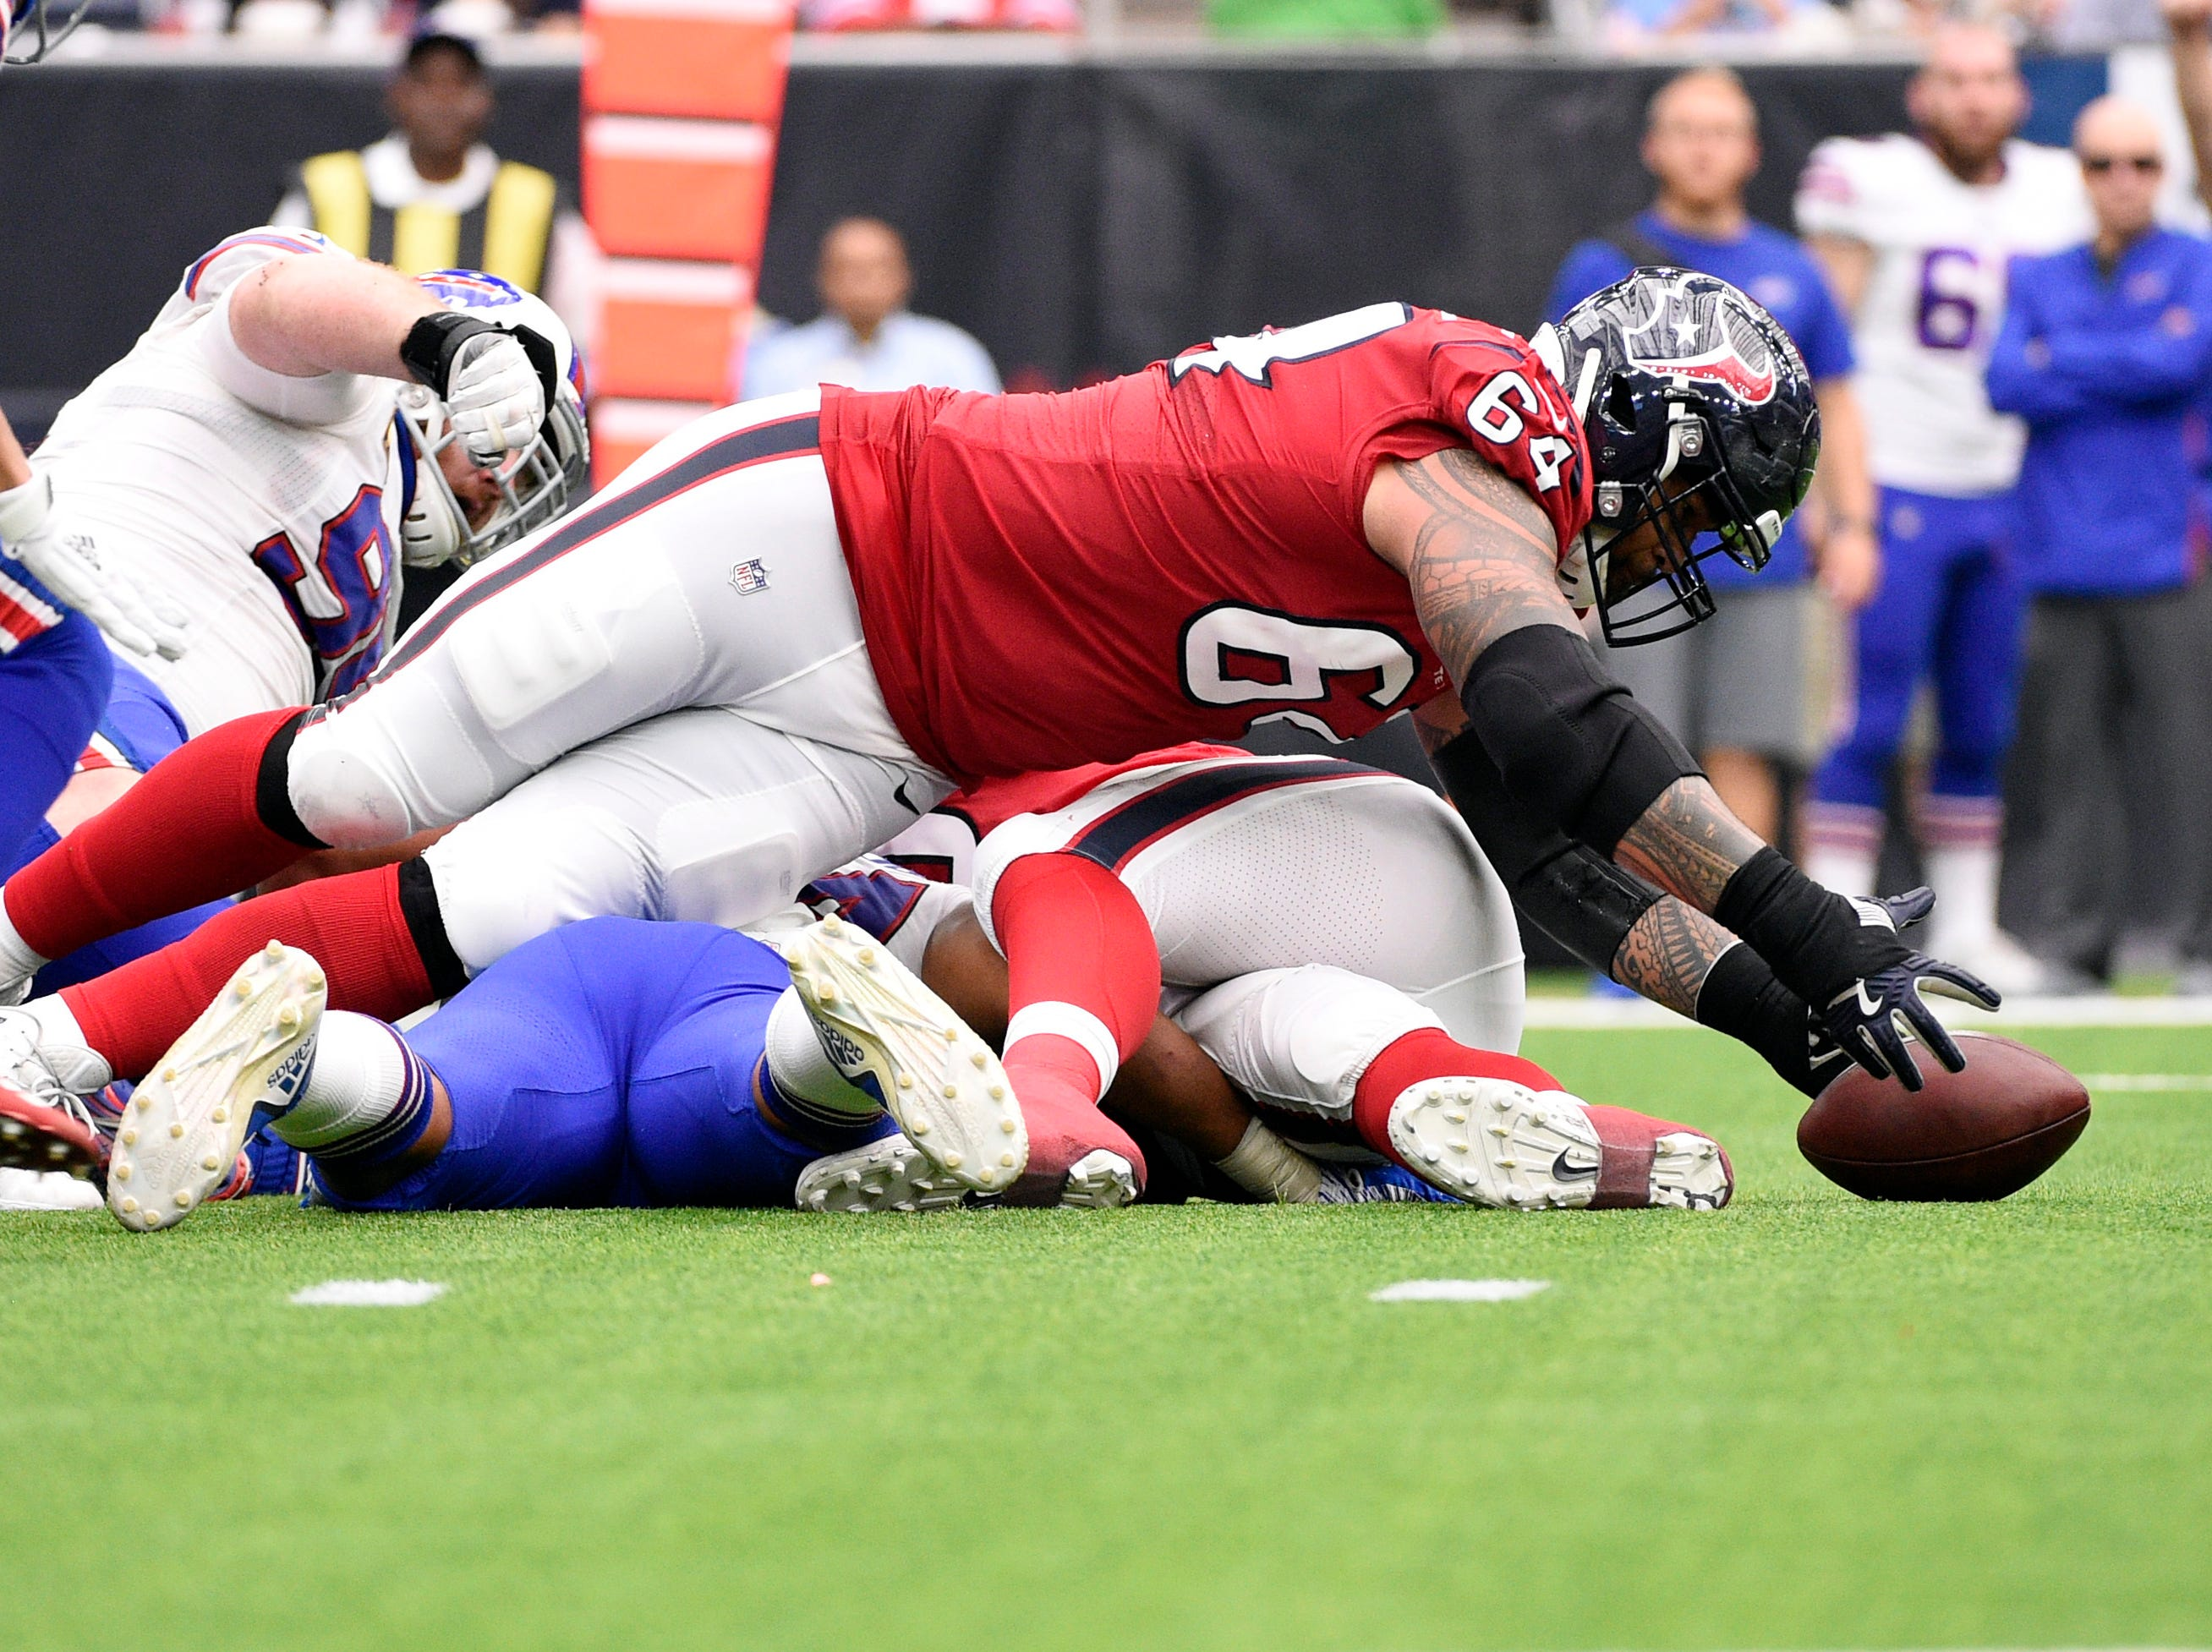 Houston Texans offensive guard Senio Kelemete (64) recovers a fumble during the first half of an NFL football game against the Buffalo Bills, Sunday, Oct. 14, 2018, in Houston. (AP Photo/Eric Christian Smith)